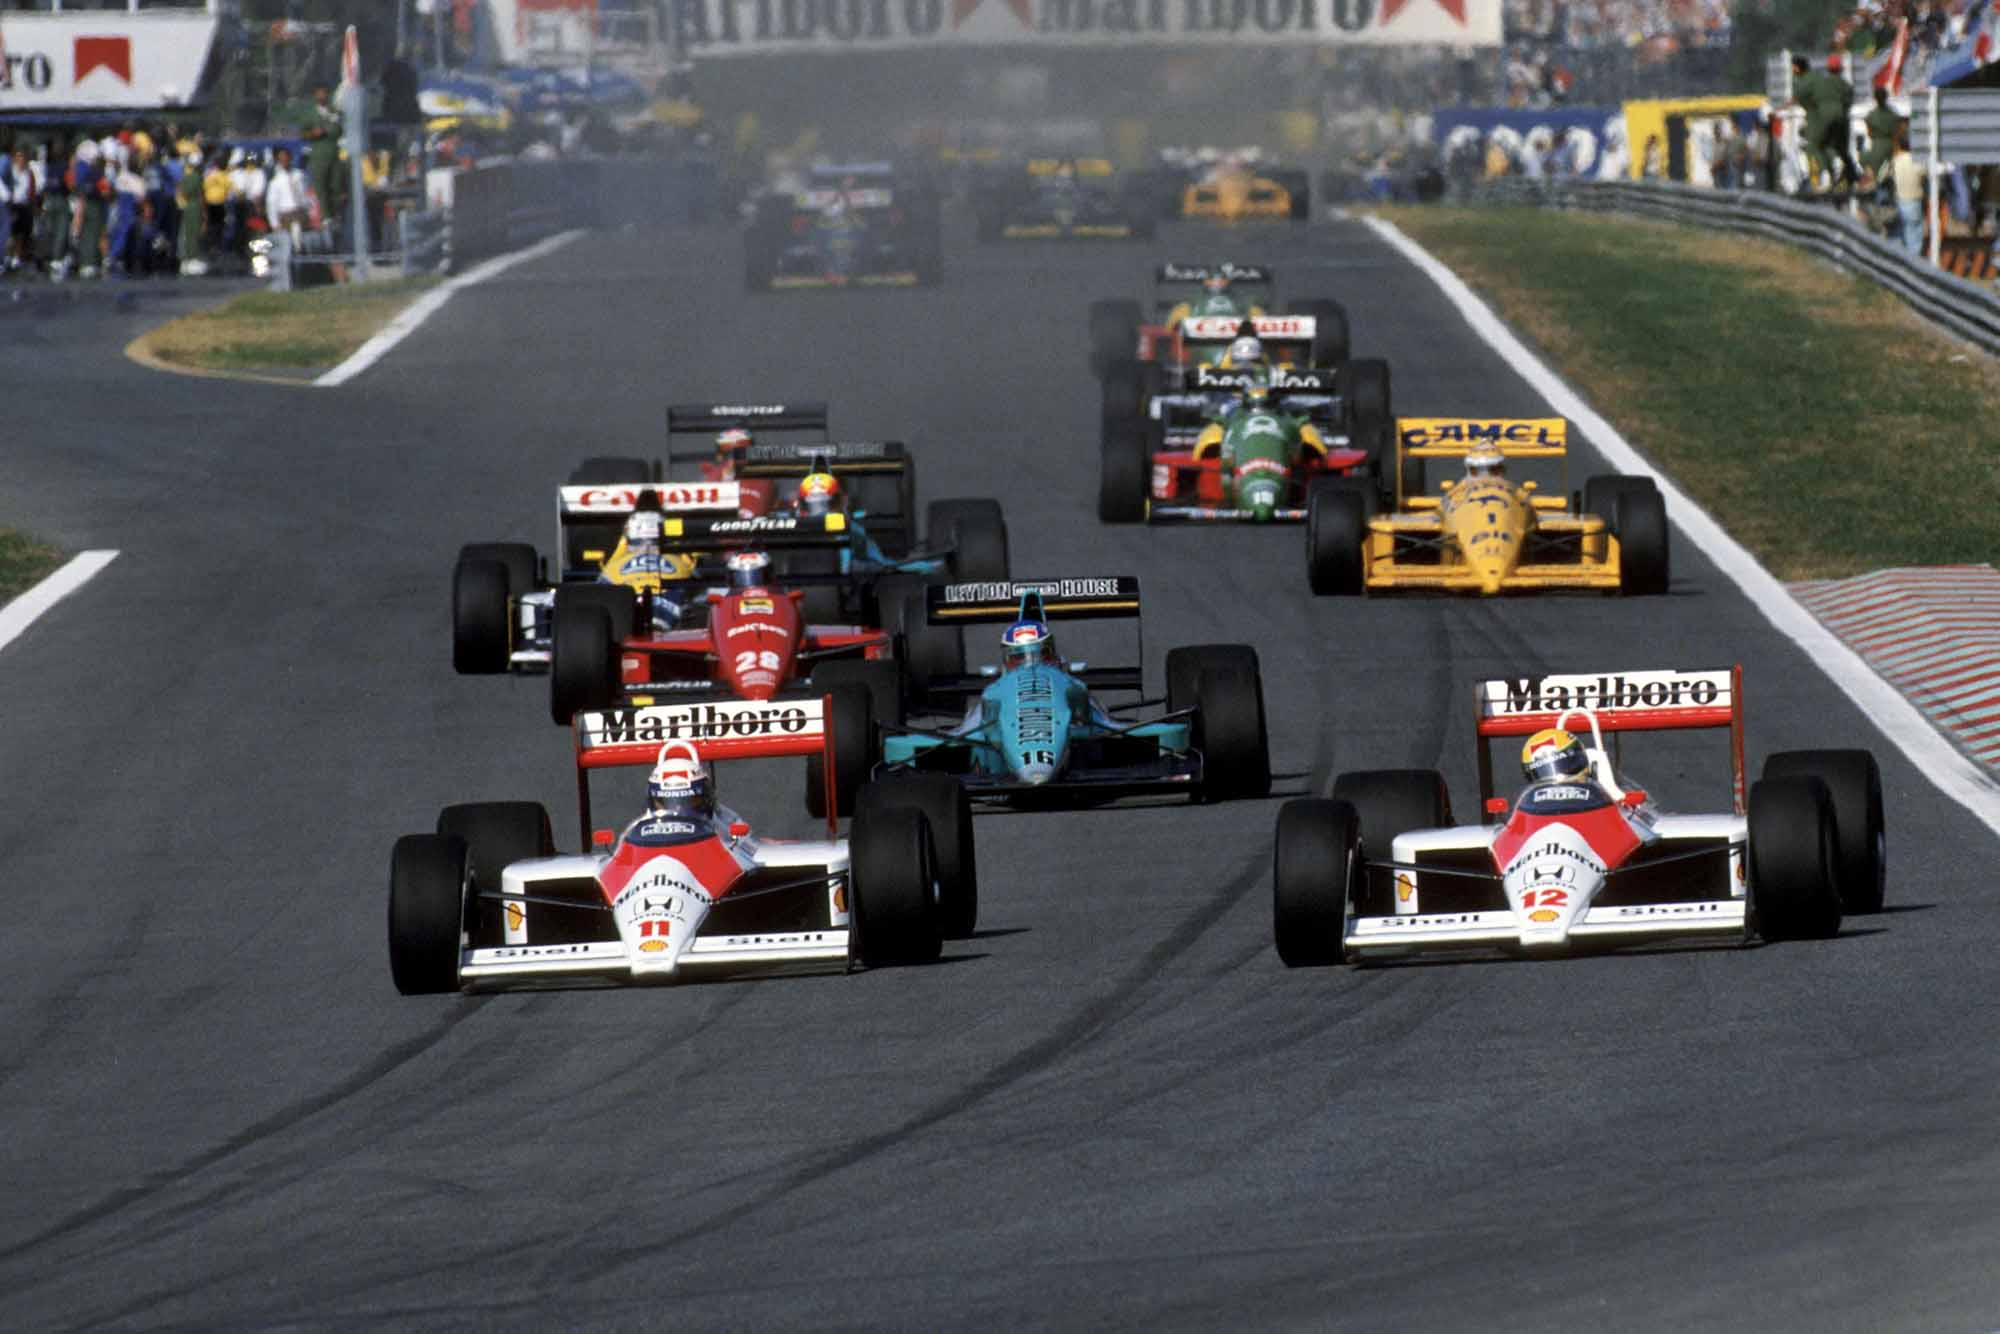 Ayrton Senna and Alain Prost in their McLaren-Hondas vie for position at 1988 Portuguese Grand Prix